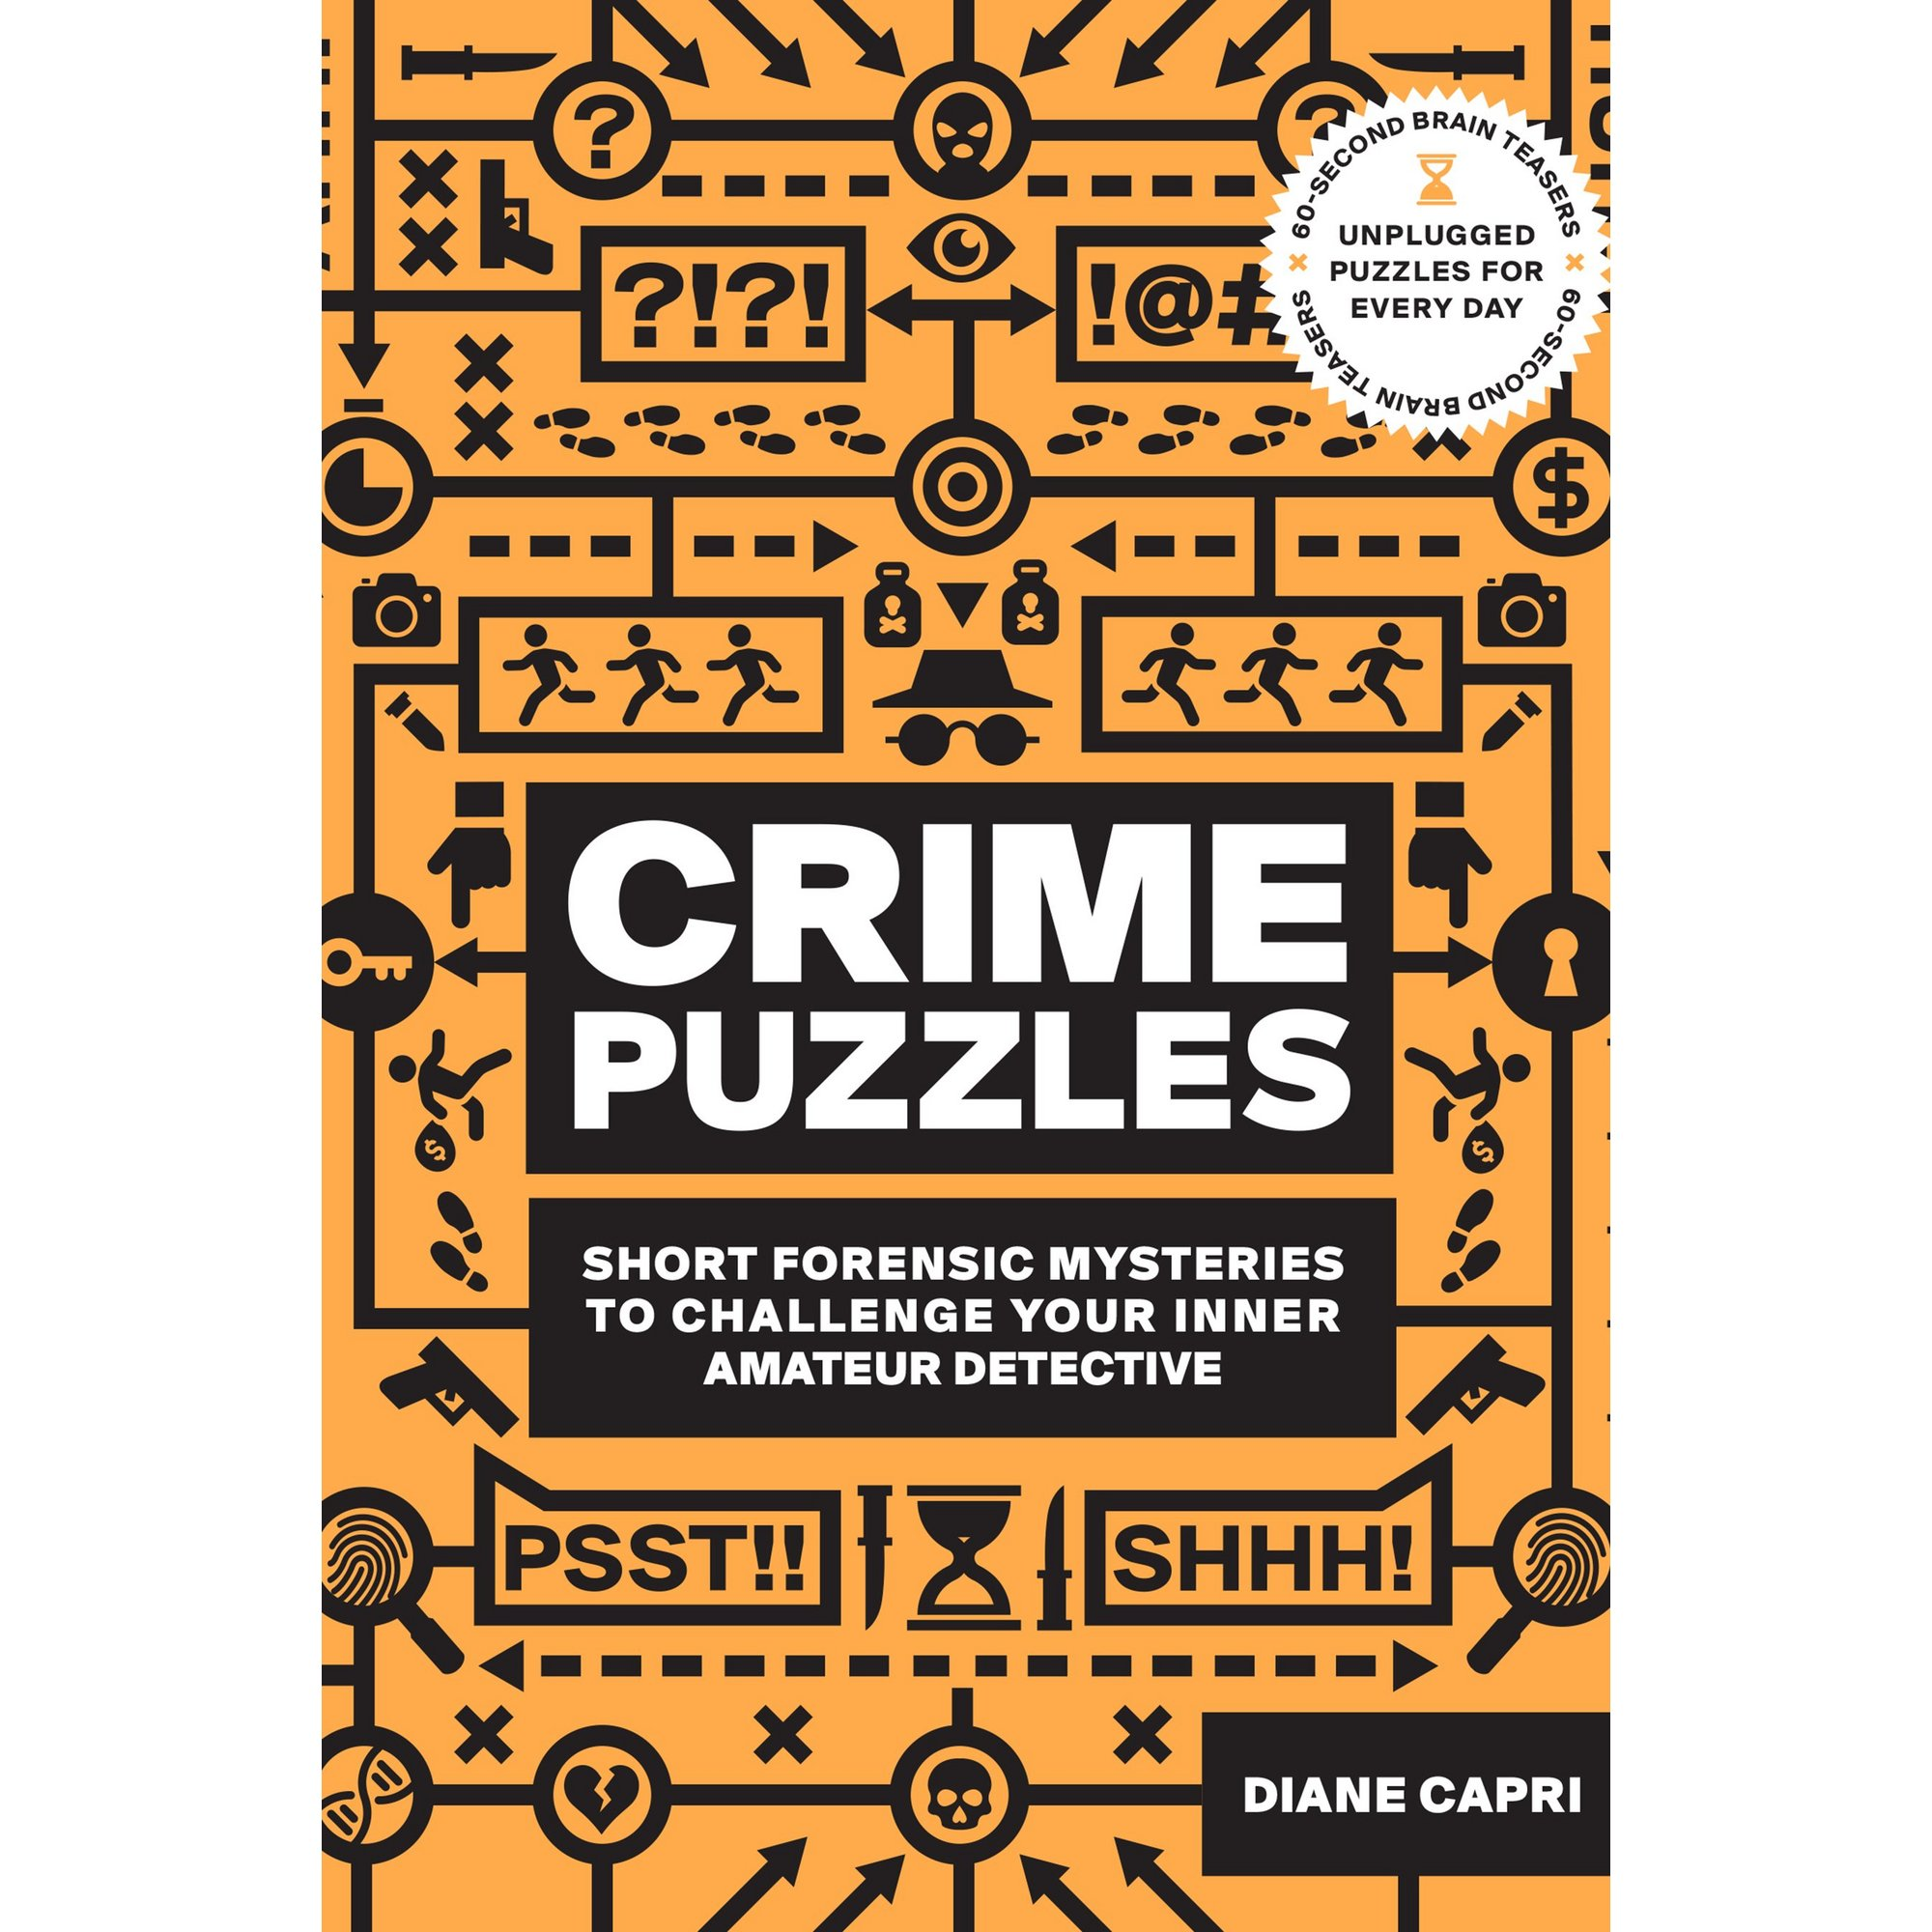 Image of 60 Second Brain Teaser Crime Puzzles Book